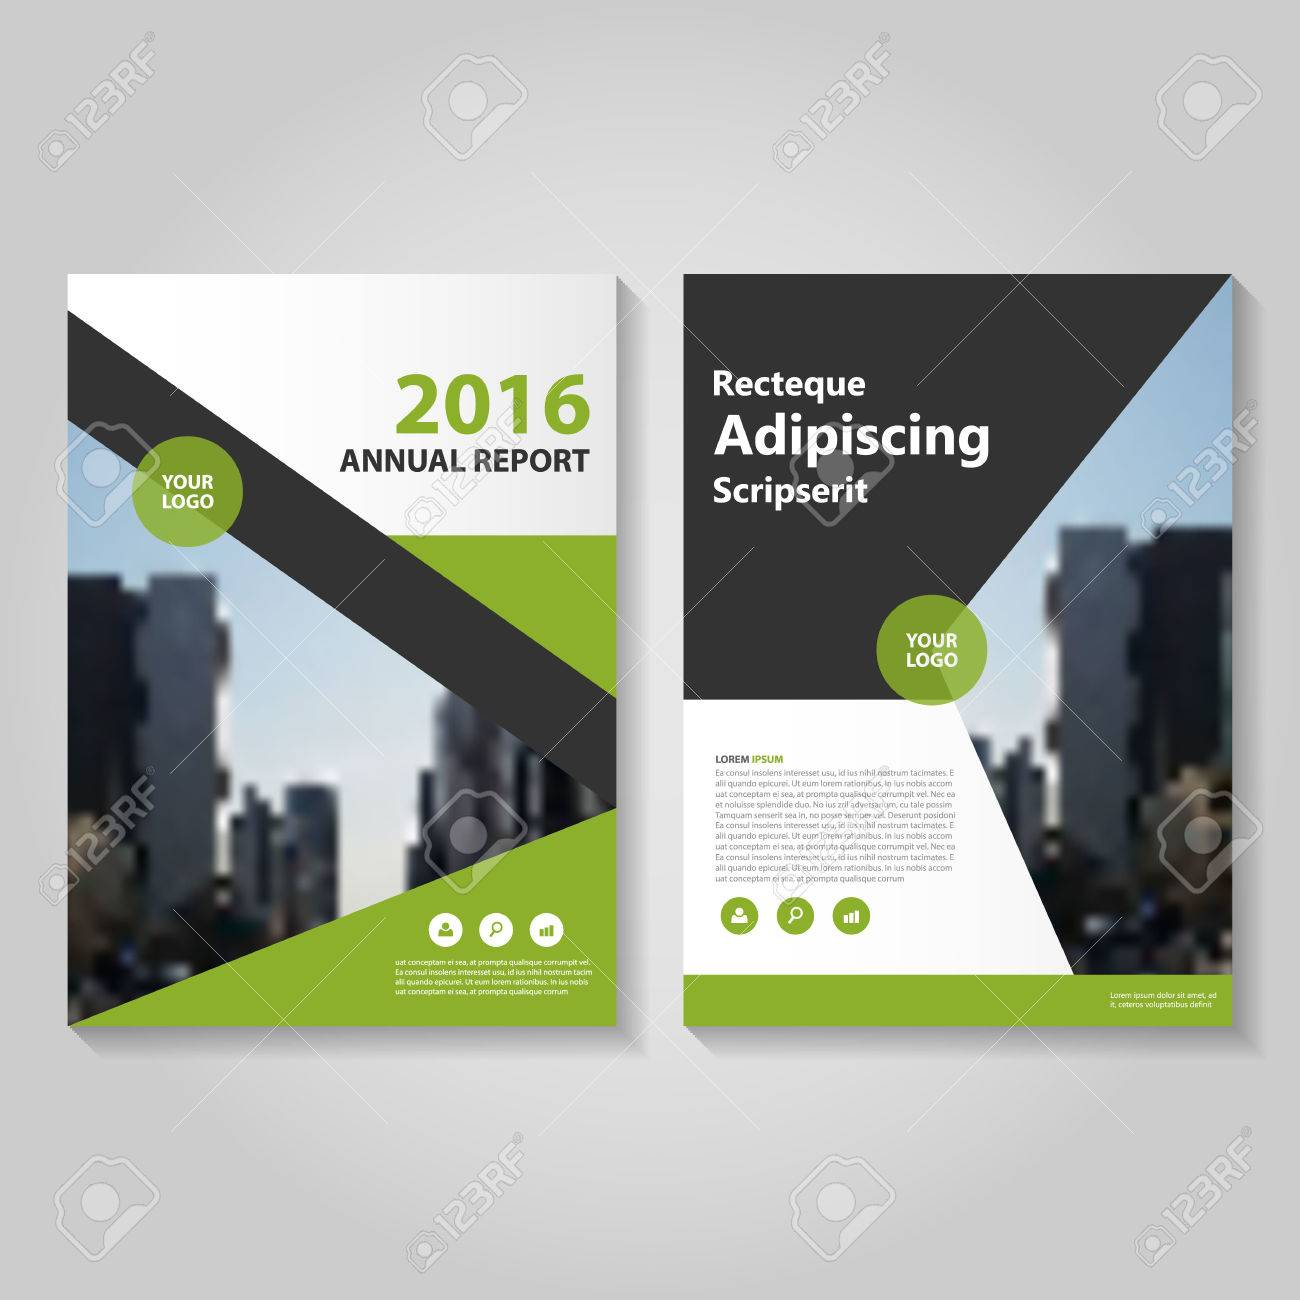 Elegance Green Black Annual Report Leaflet Brochure Template     Elegance Green black annual report Leaflet Brochure template design  book  cover layout design  Abstract